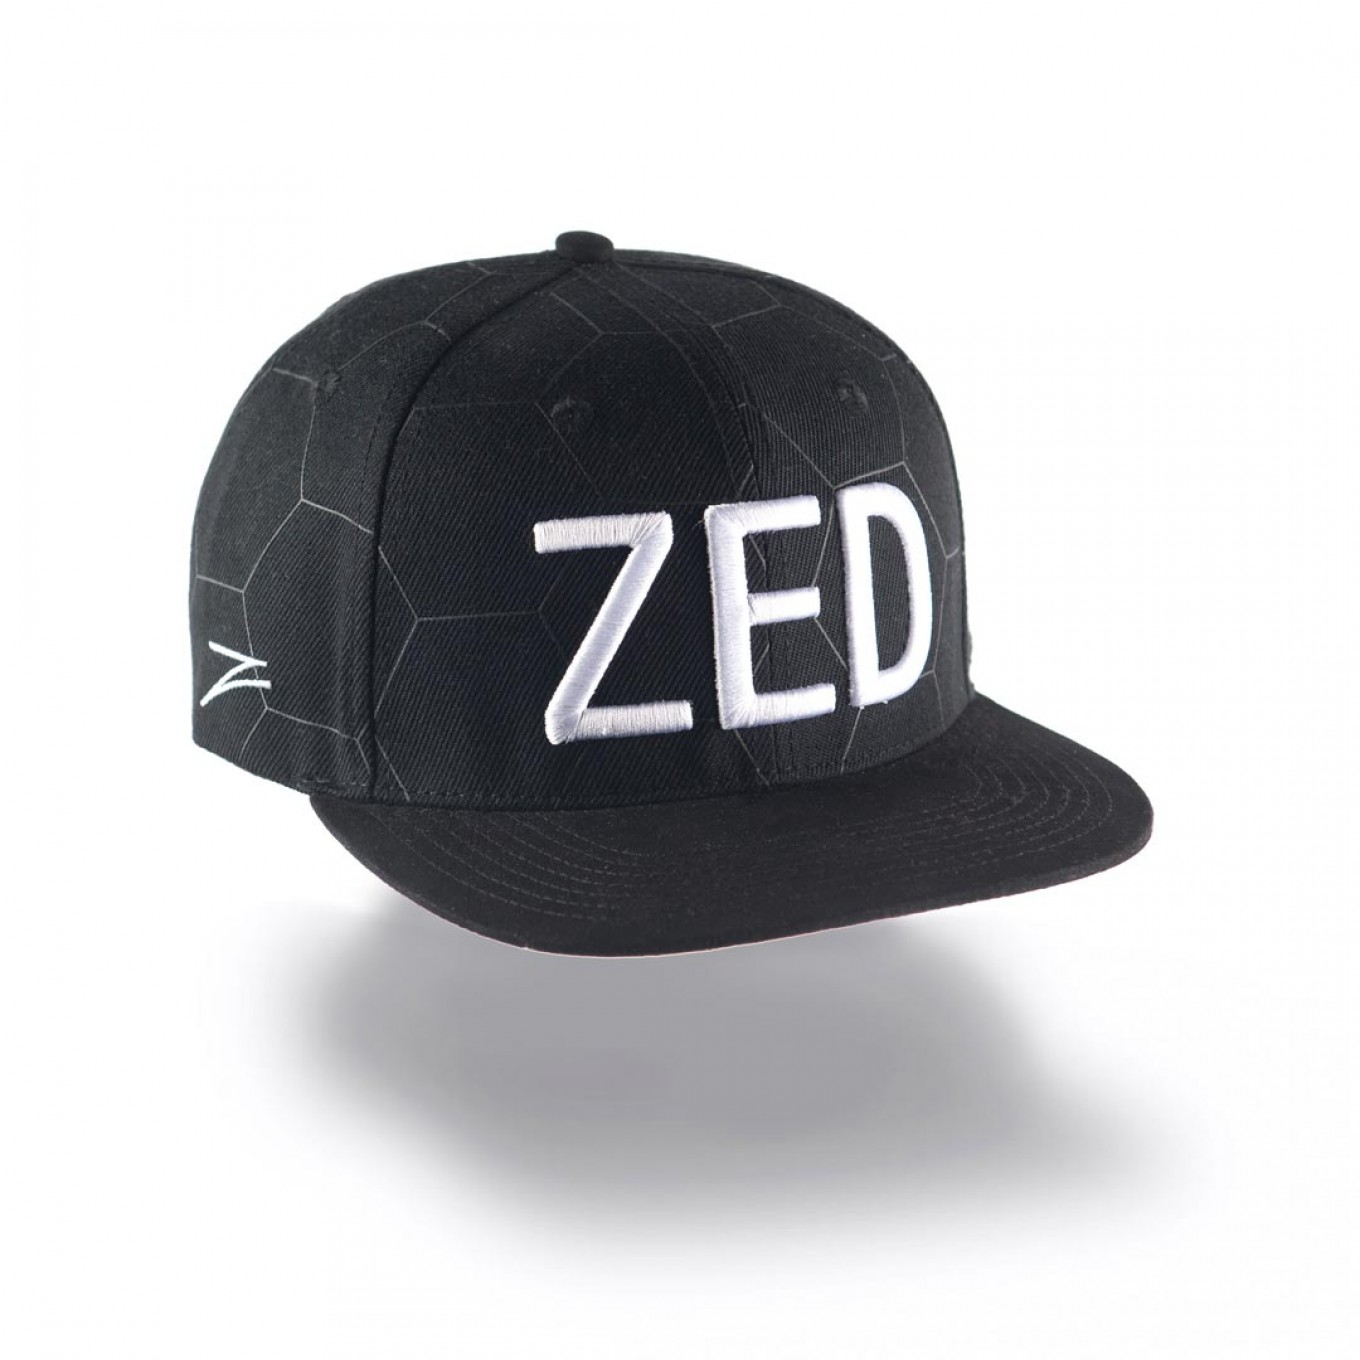 Z-Performance Kappe | ZED